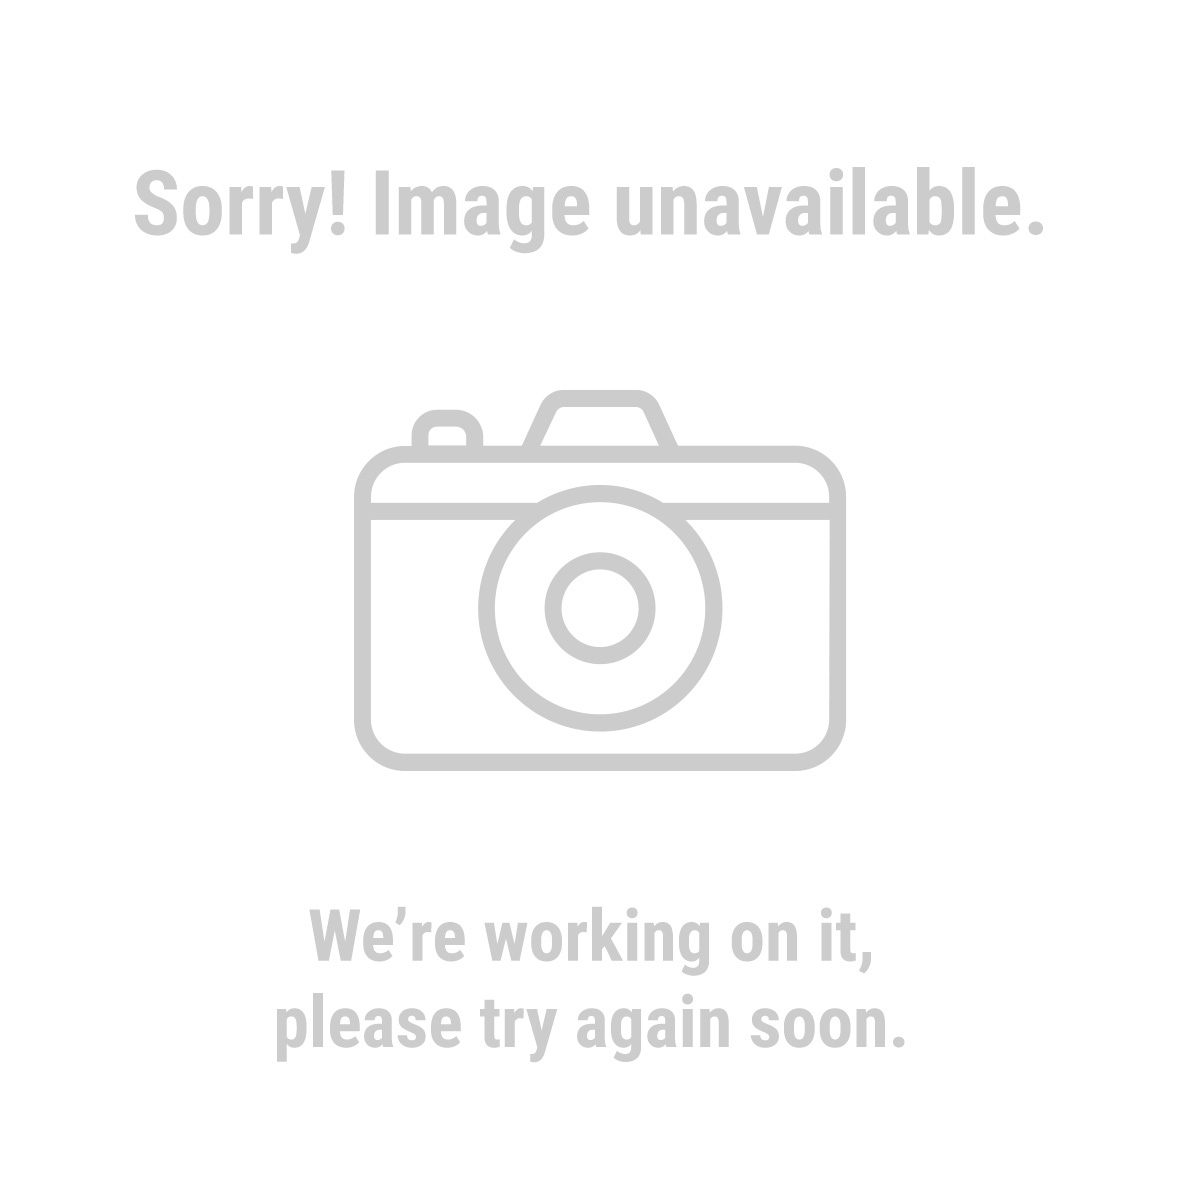 "Pittsburgh 36620 1/2"" Picket Twister Attachment"